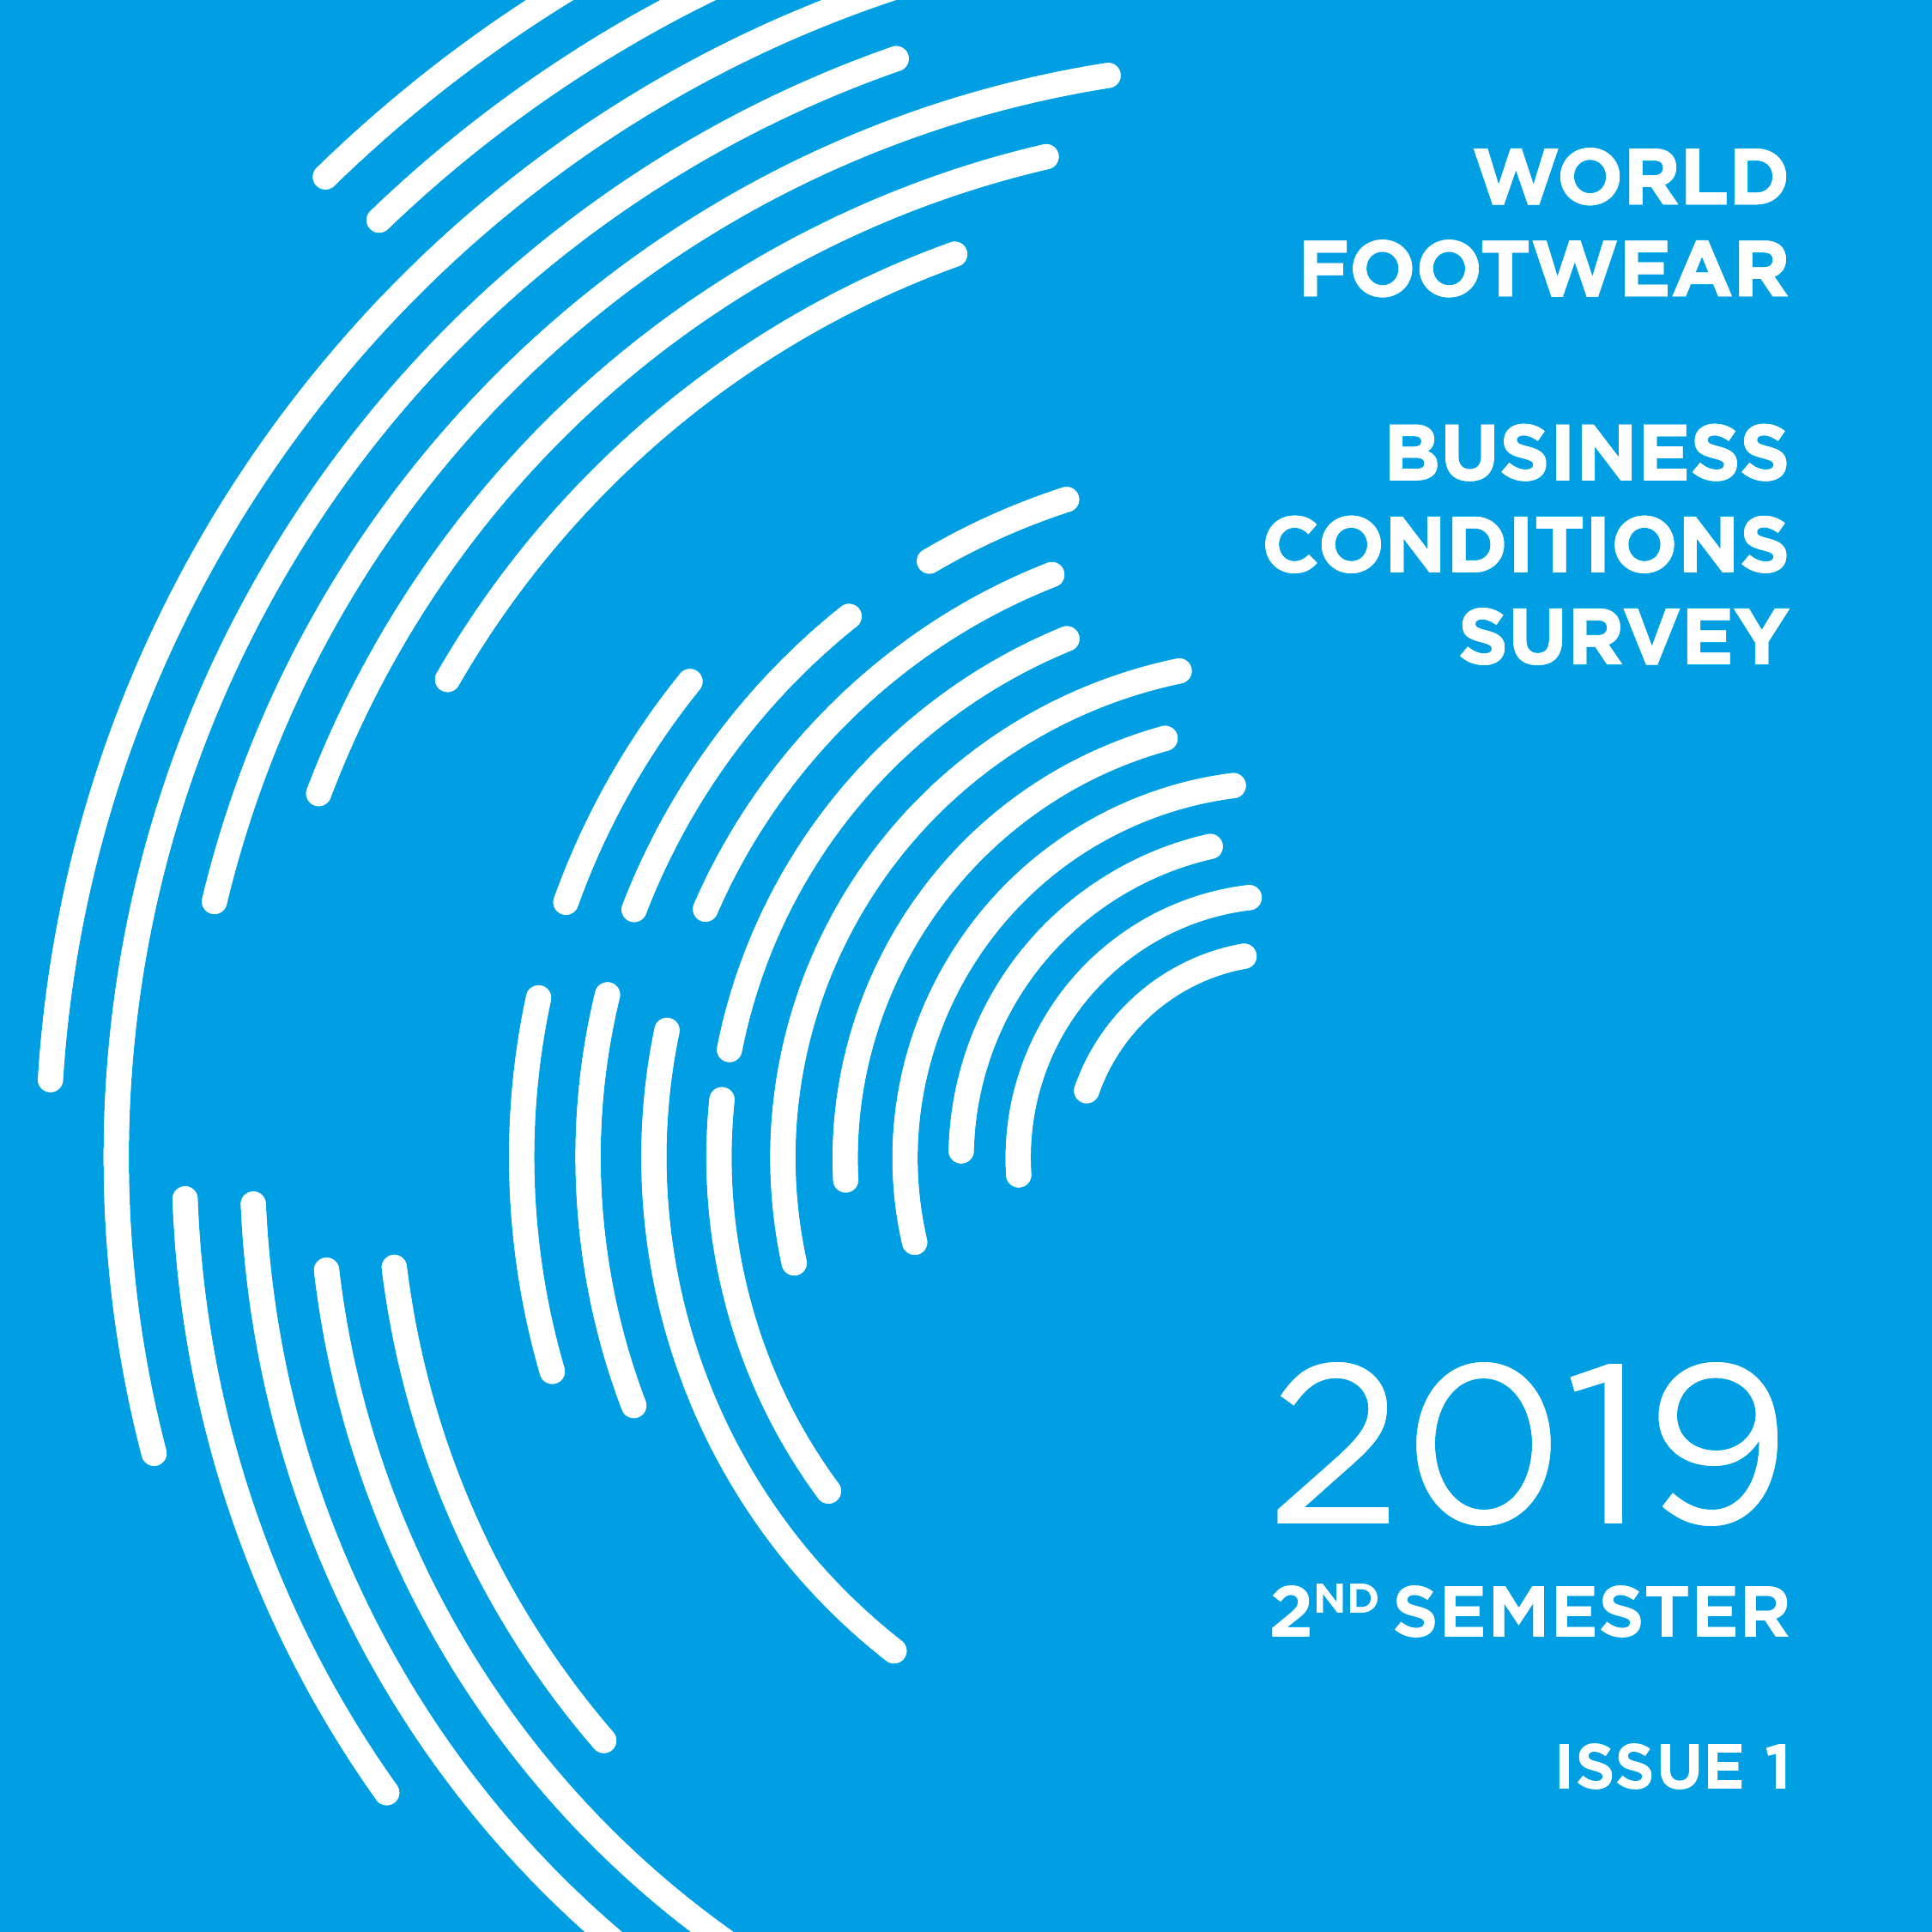 Business Conditions Survey Second Semester 2019